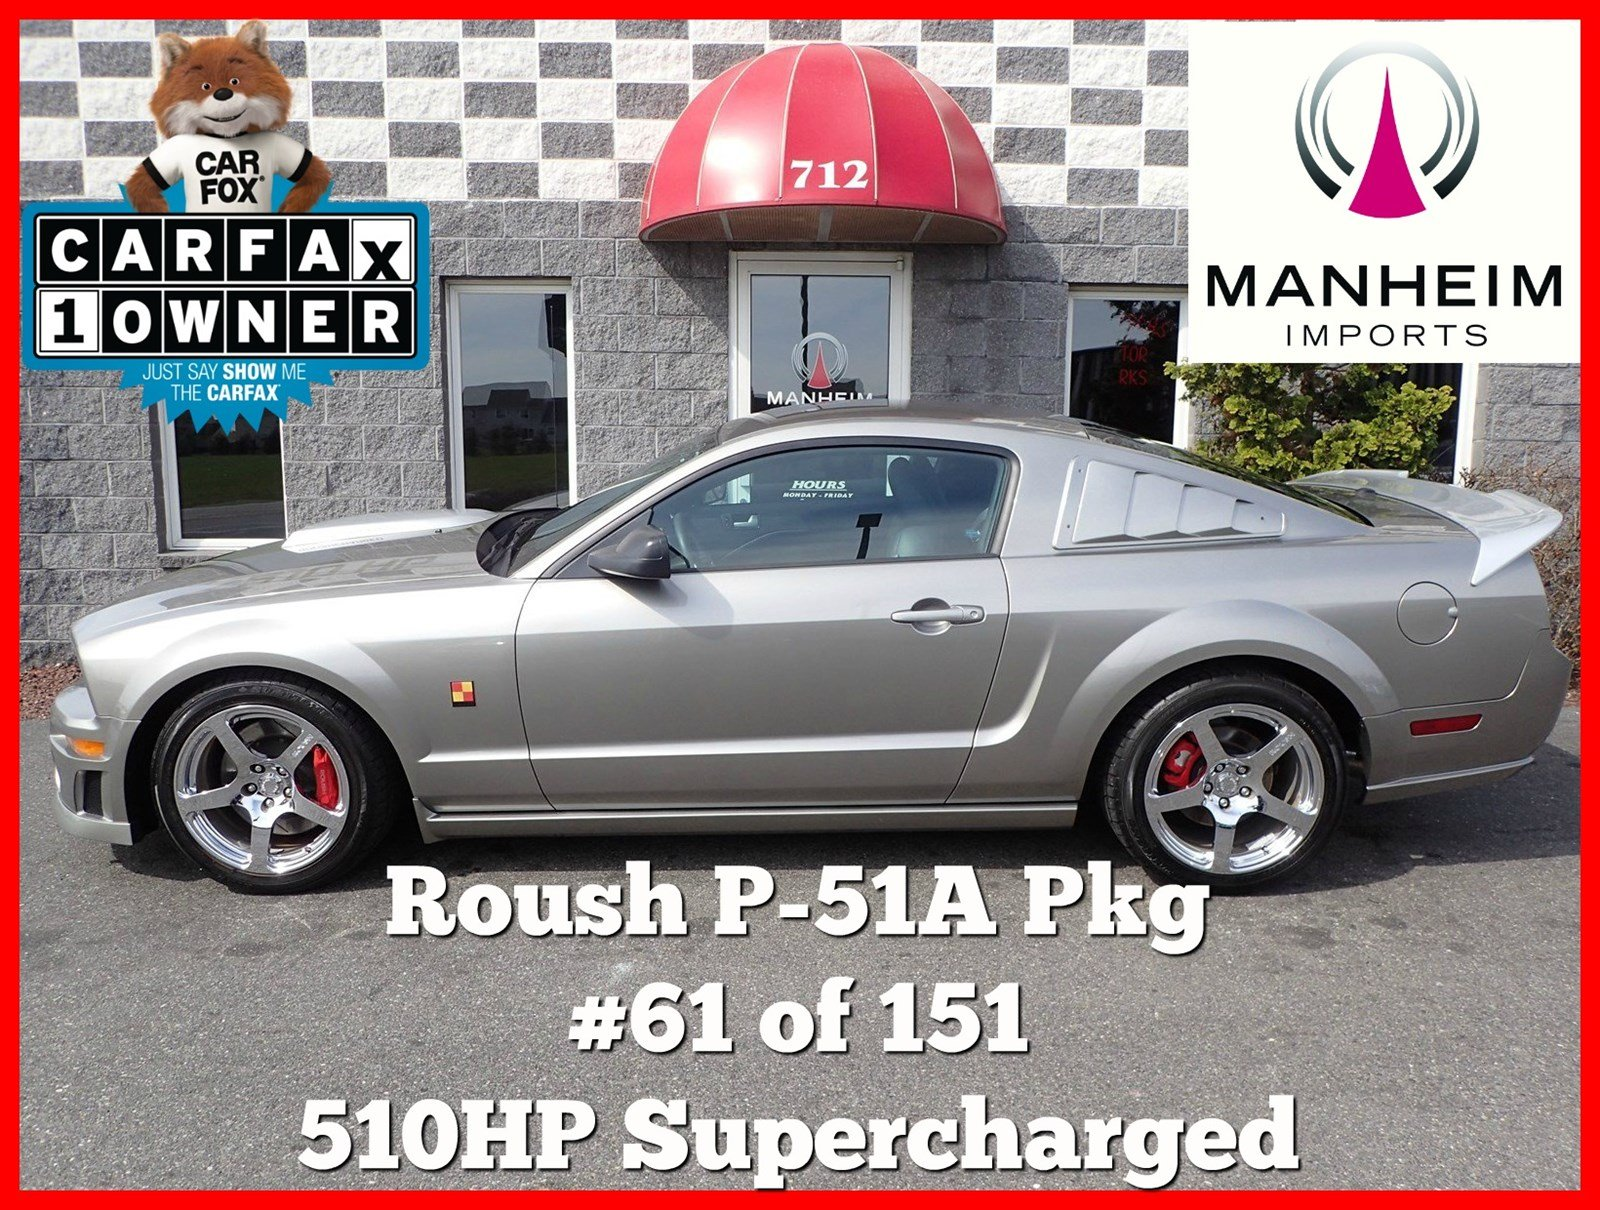 Pre-Owned 2008 Ford Mustang GT Roush P-51A 61 of 151